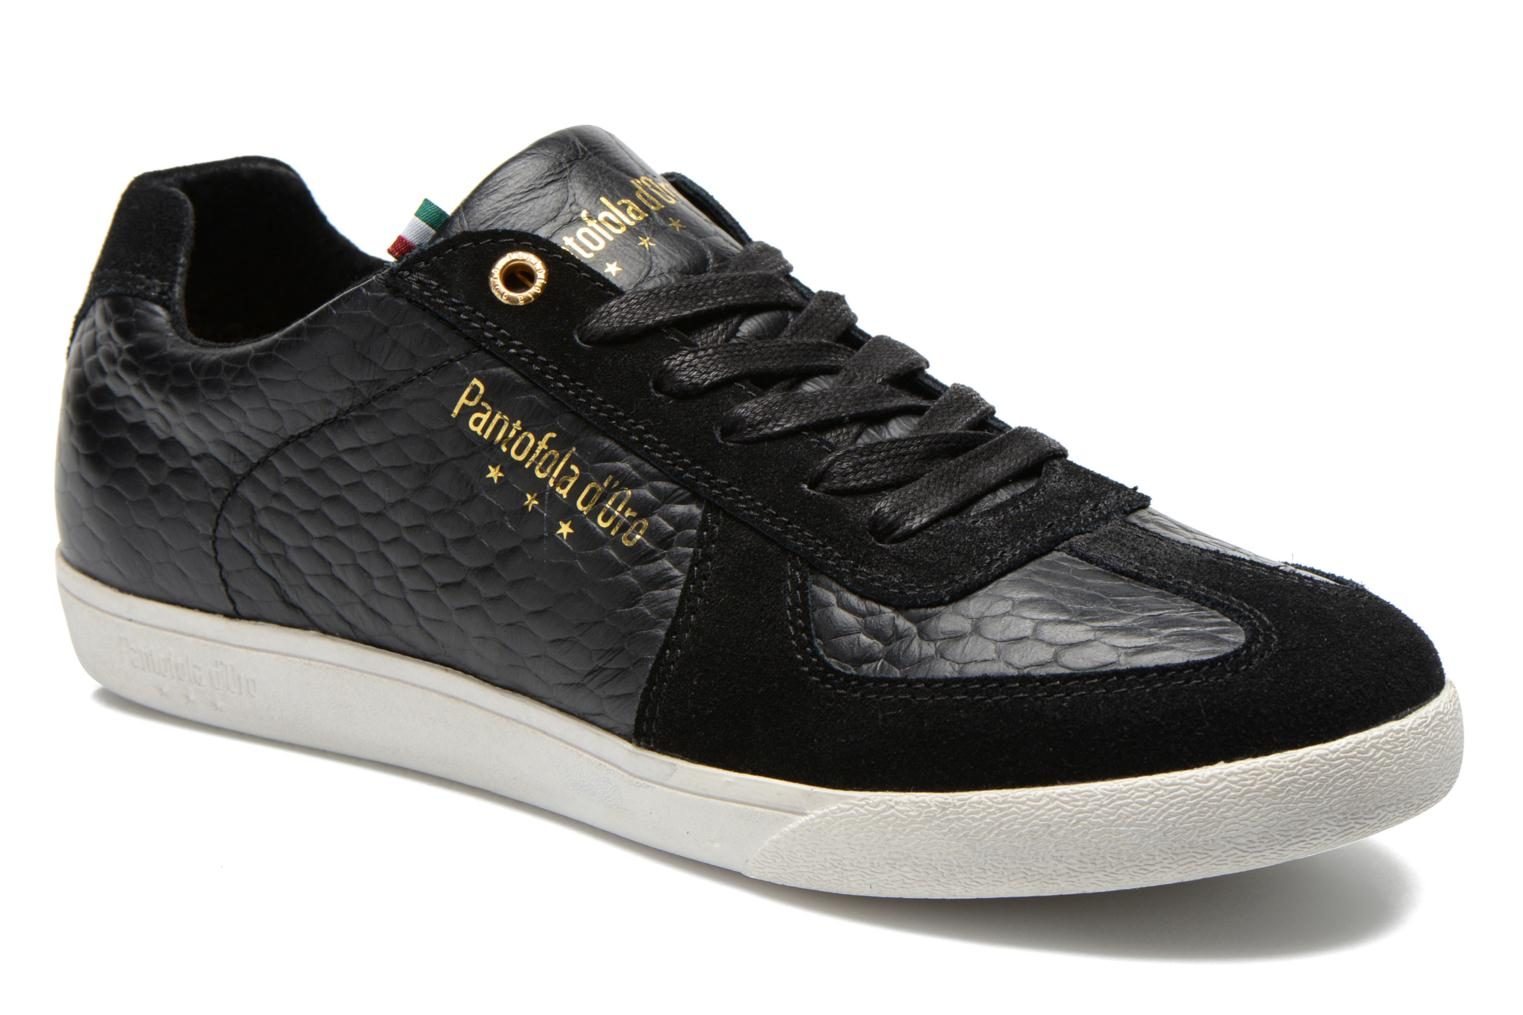 Sneakers Carraca Low by Pantofola d'Oro